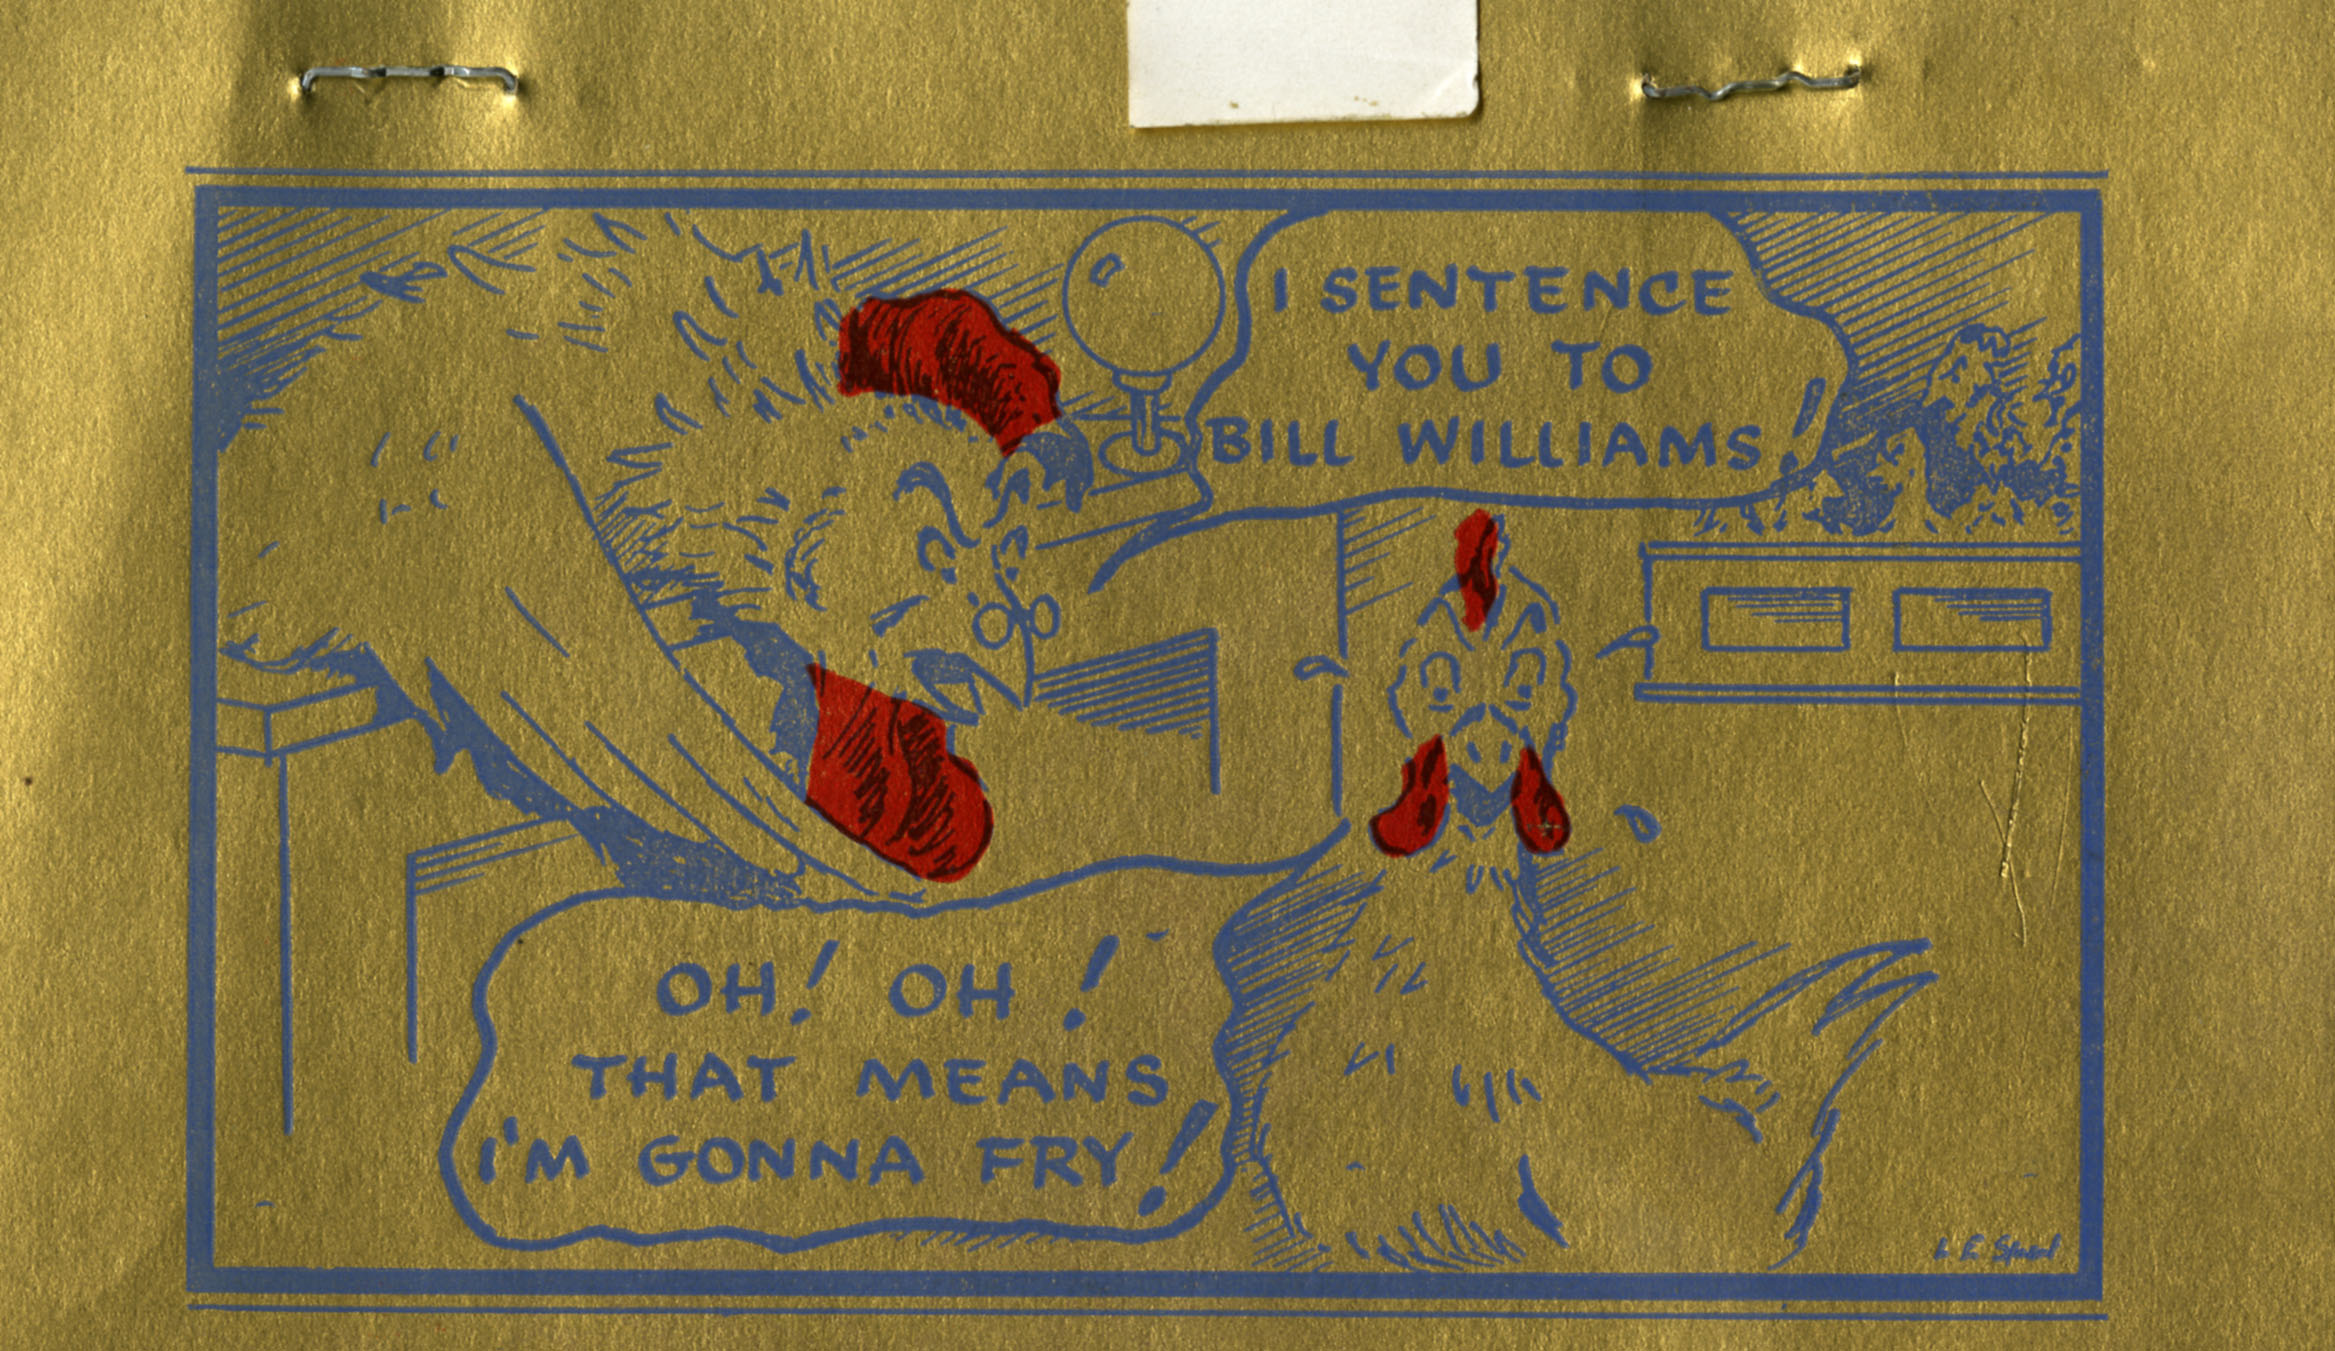 ... know when Bill Williams went away but I wish it were still there